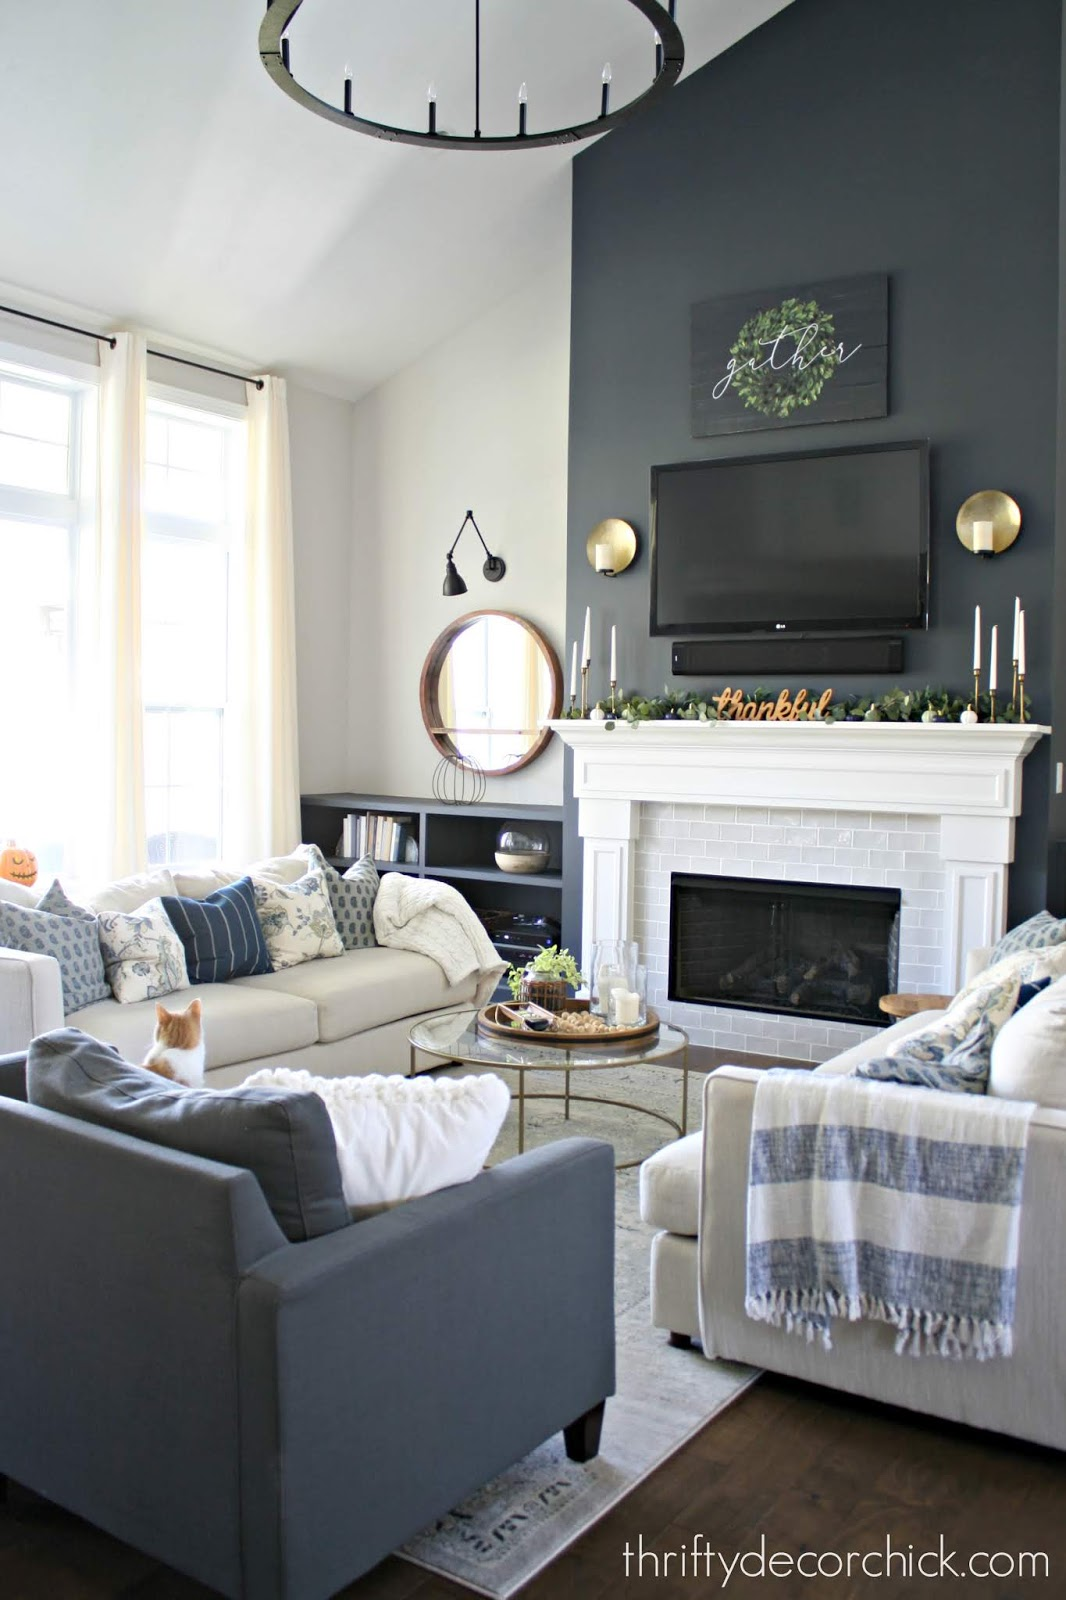 How to make a large room feel cozy